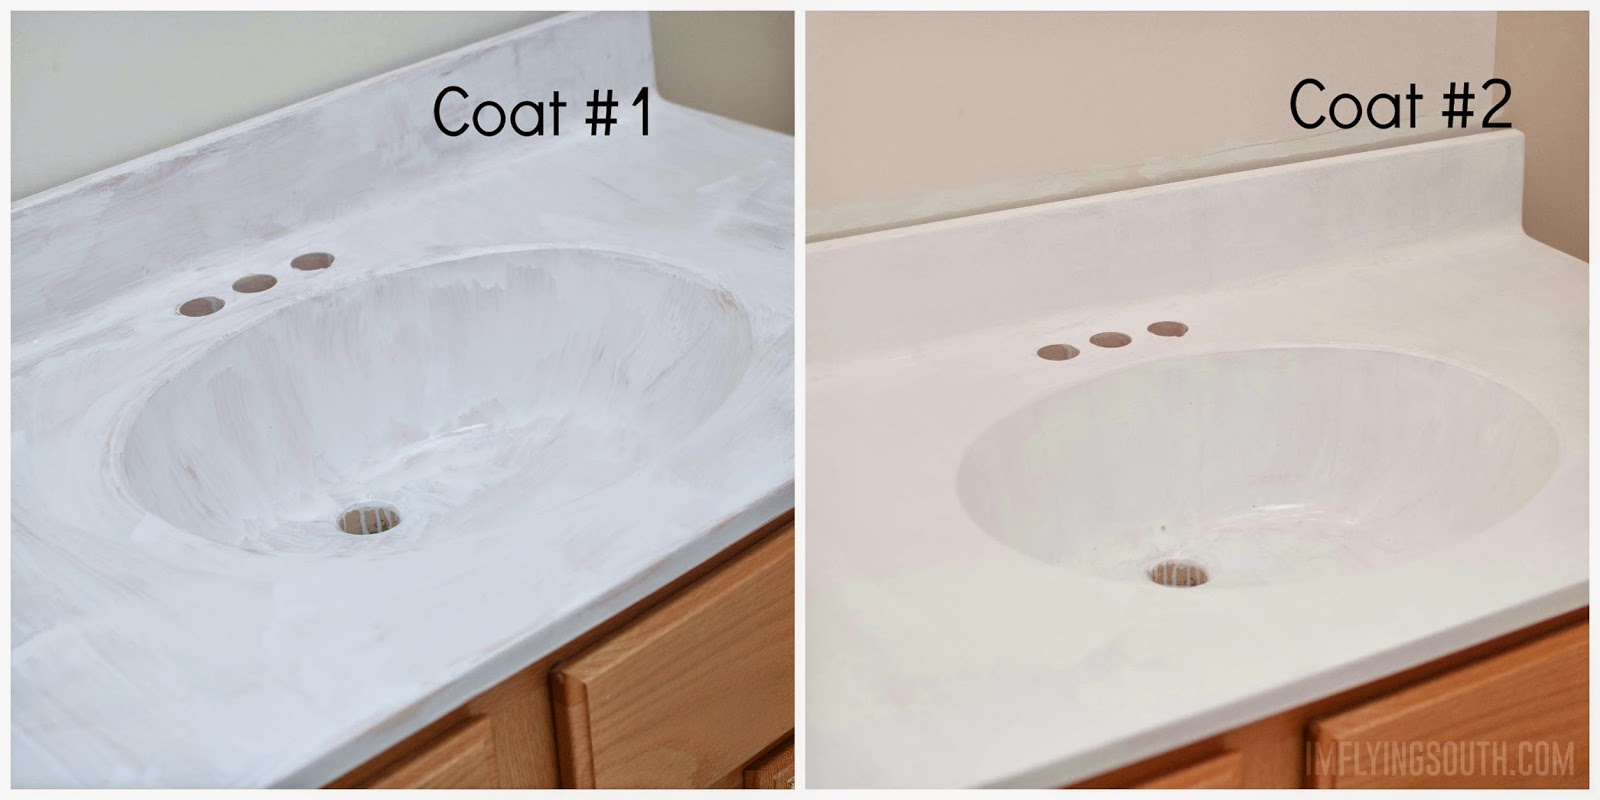 How to paint bathroom countertops - Painted Bathroom Sink And Countertop Process I M Flying South Featured On Remodelaholic